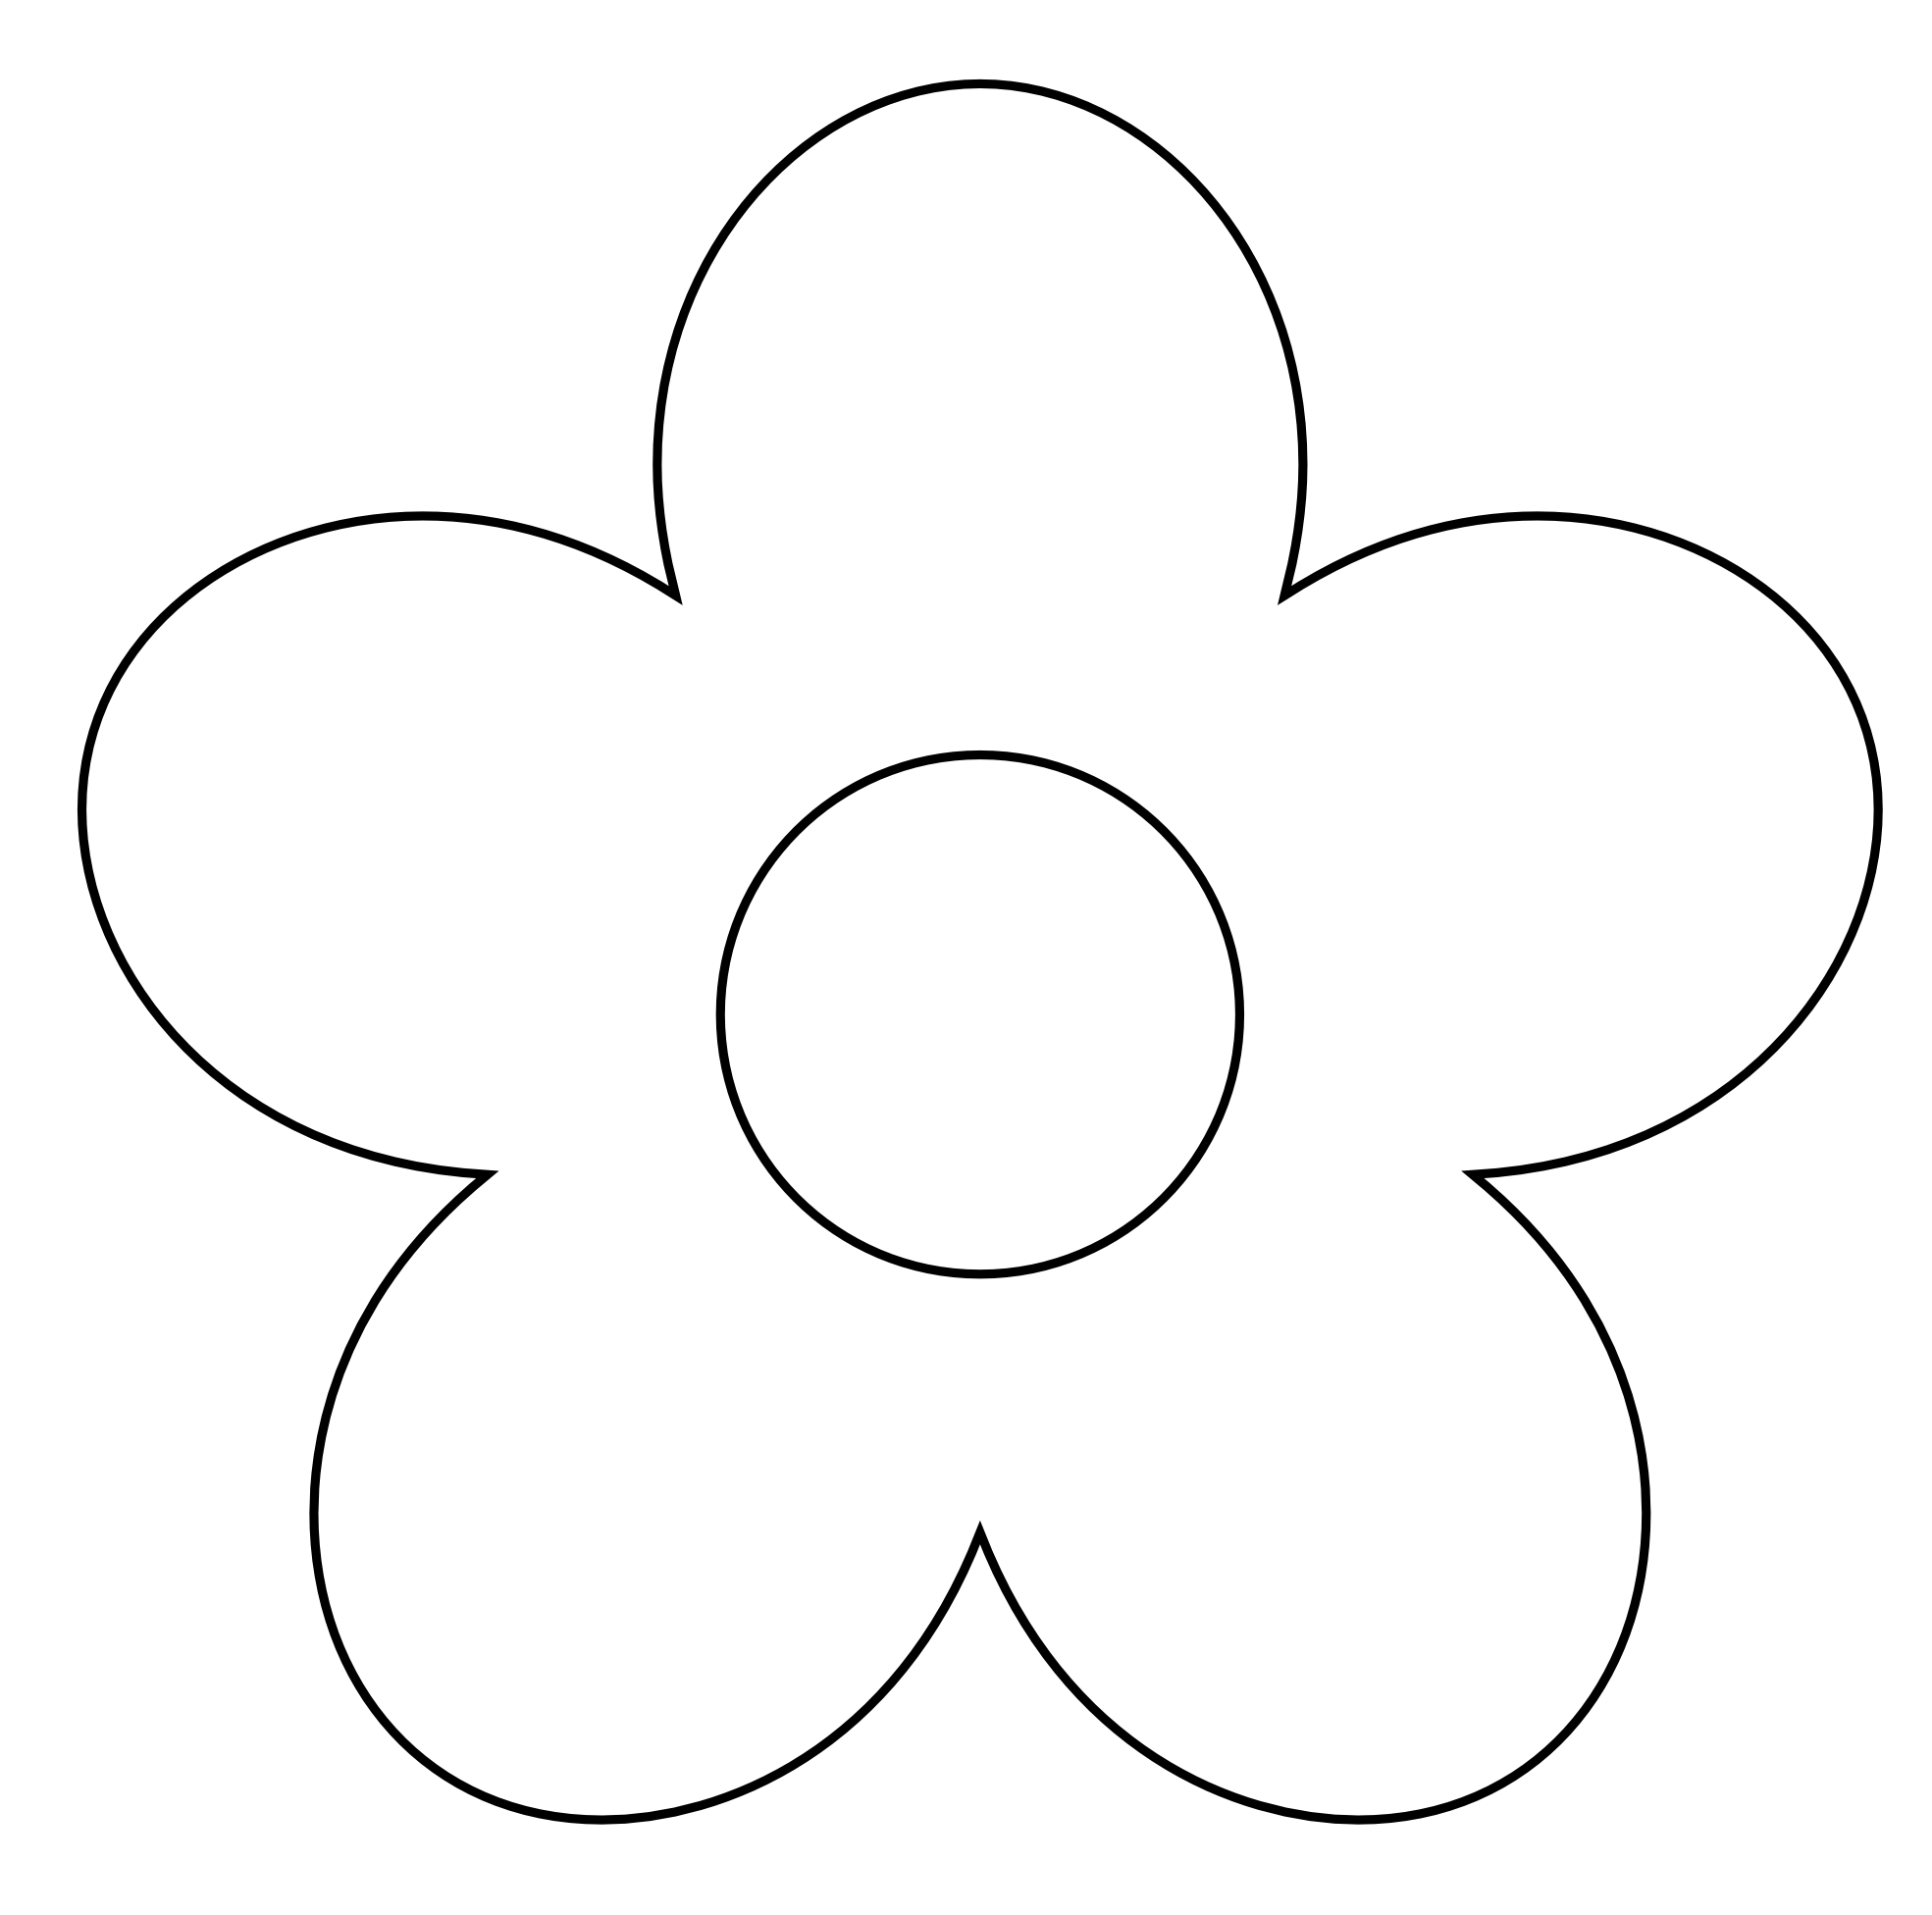 Black And White Flowers Clipart - ClipArt Best